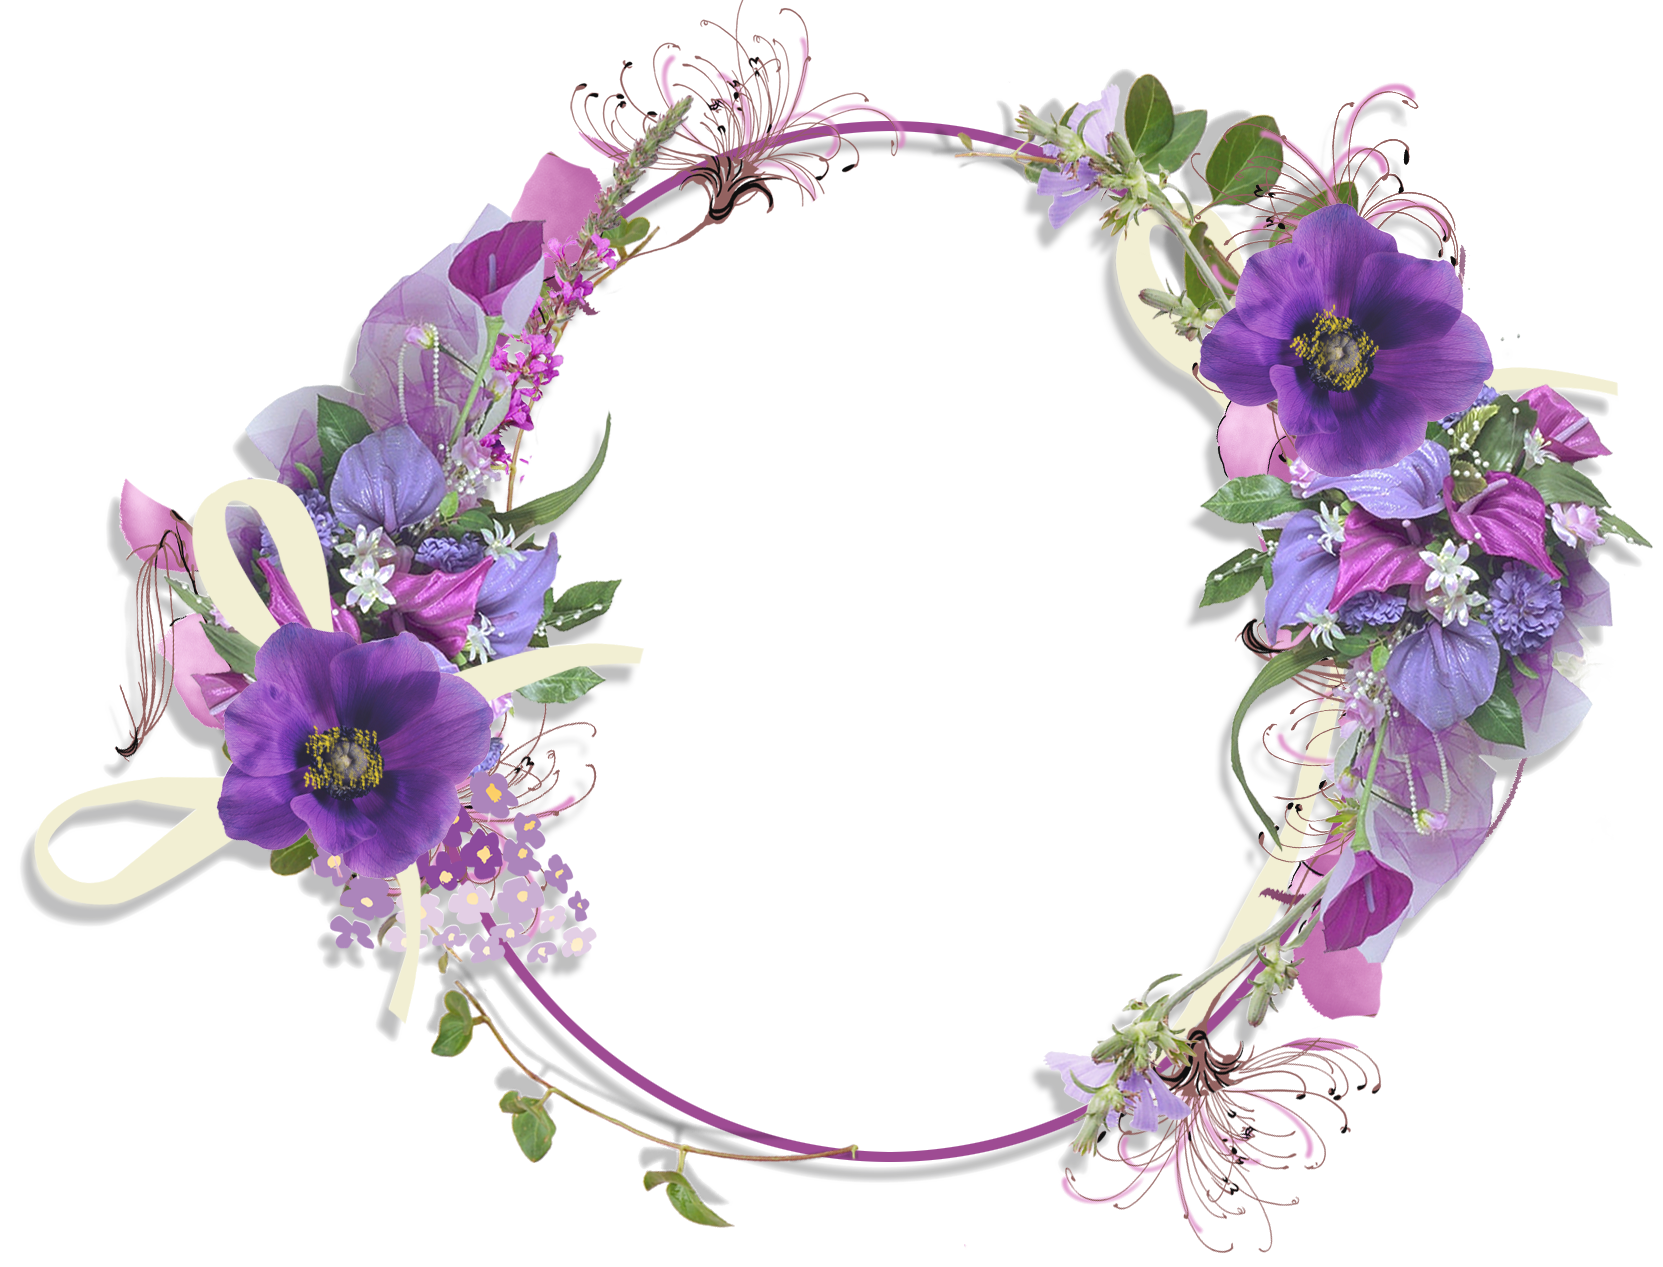 Flower frame vector | Vector | Pinterest | Flower frame ...